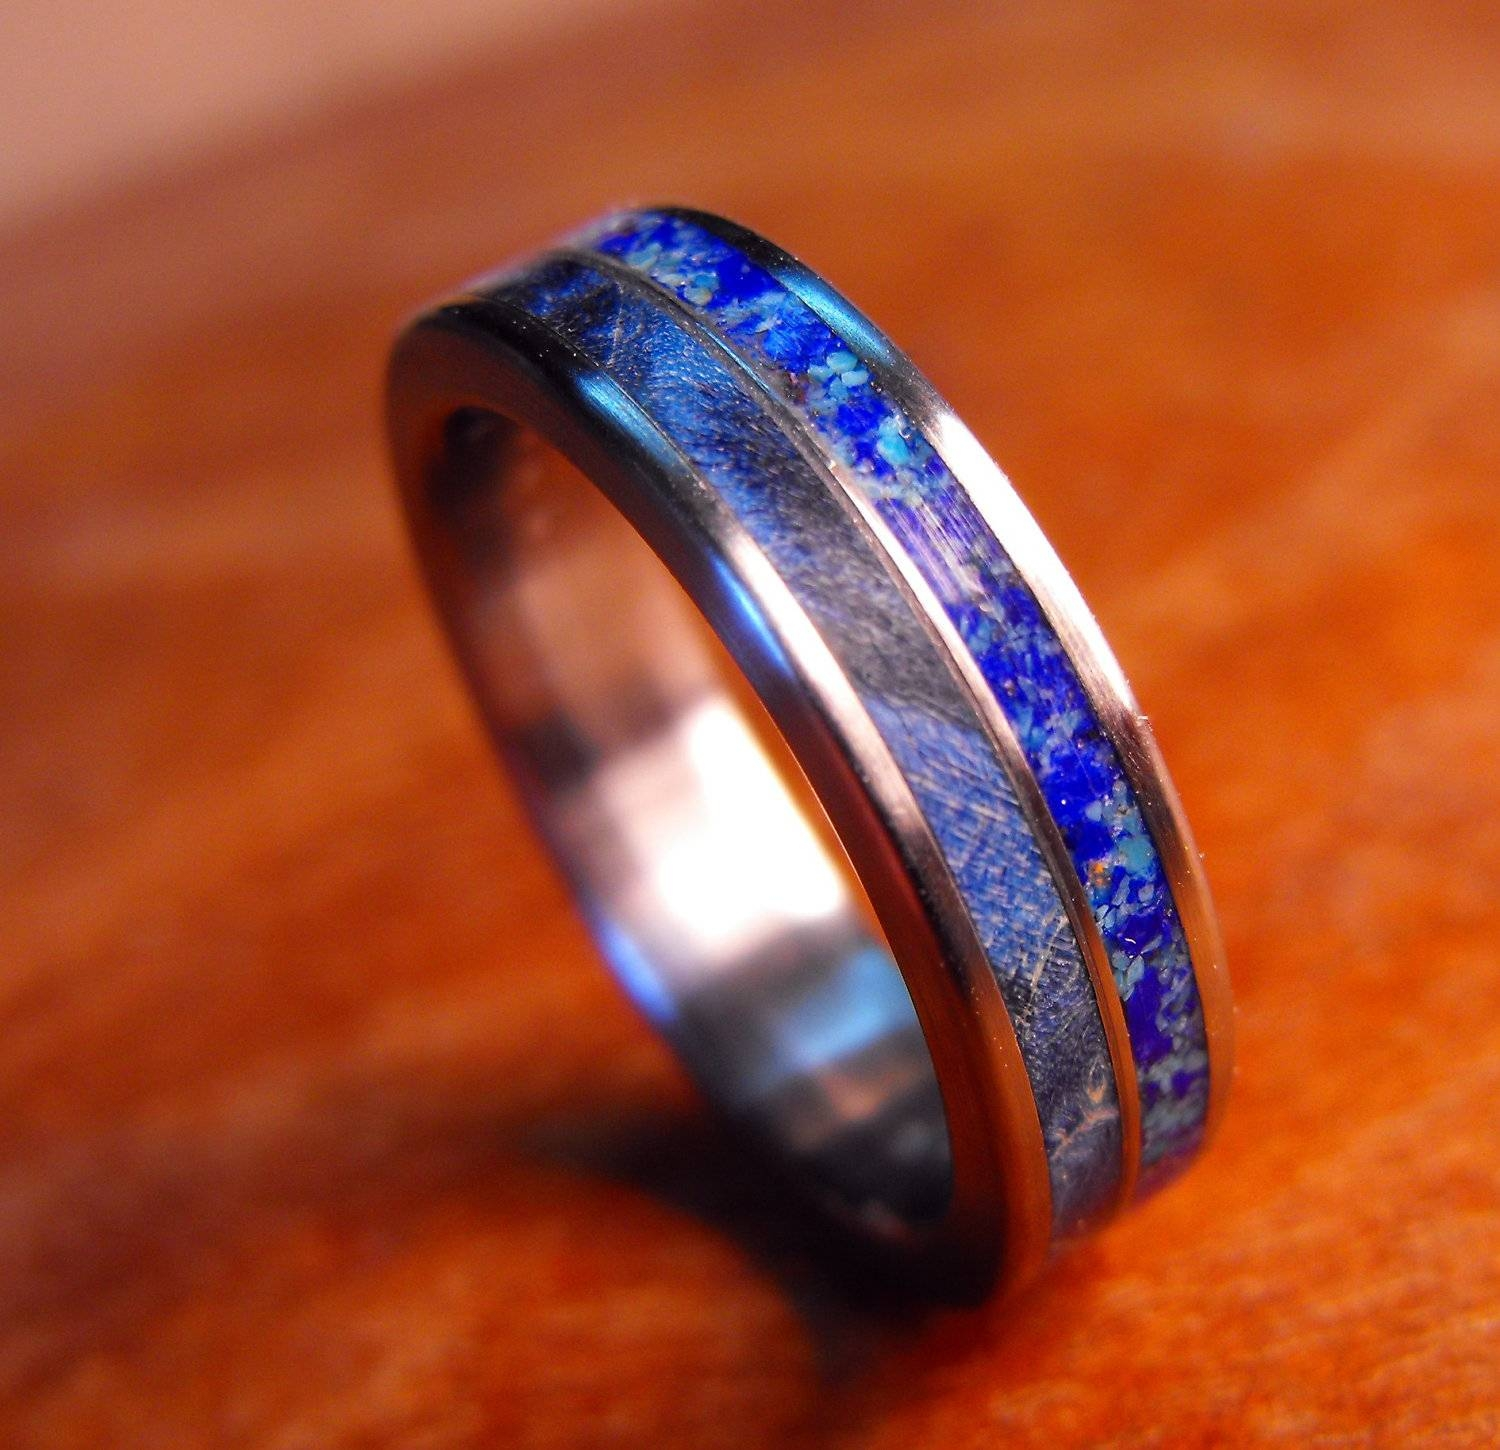 Loyalty Symbol Of Unique Mens Wedding Bands | Wedding Ideas Throughout Funky Mens Wedding Rings (View 4 of 15)